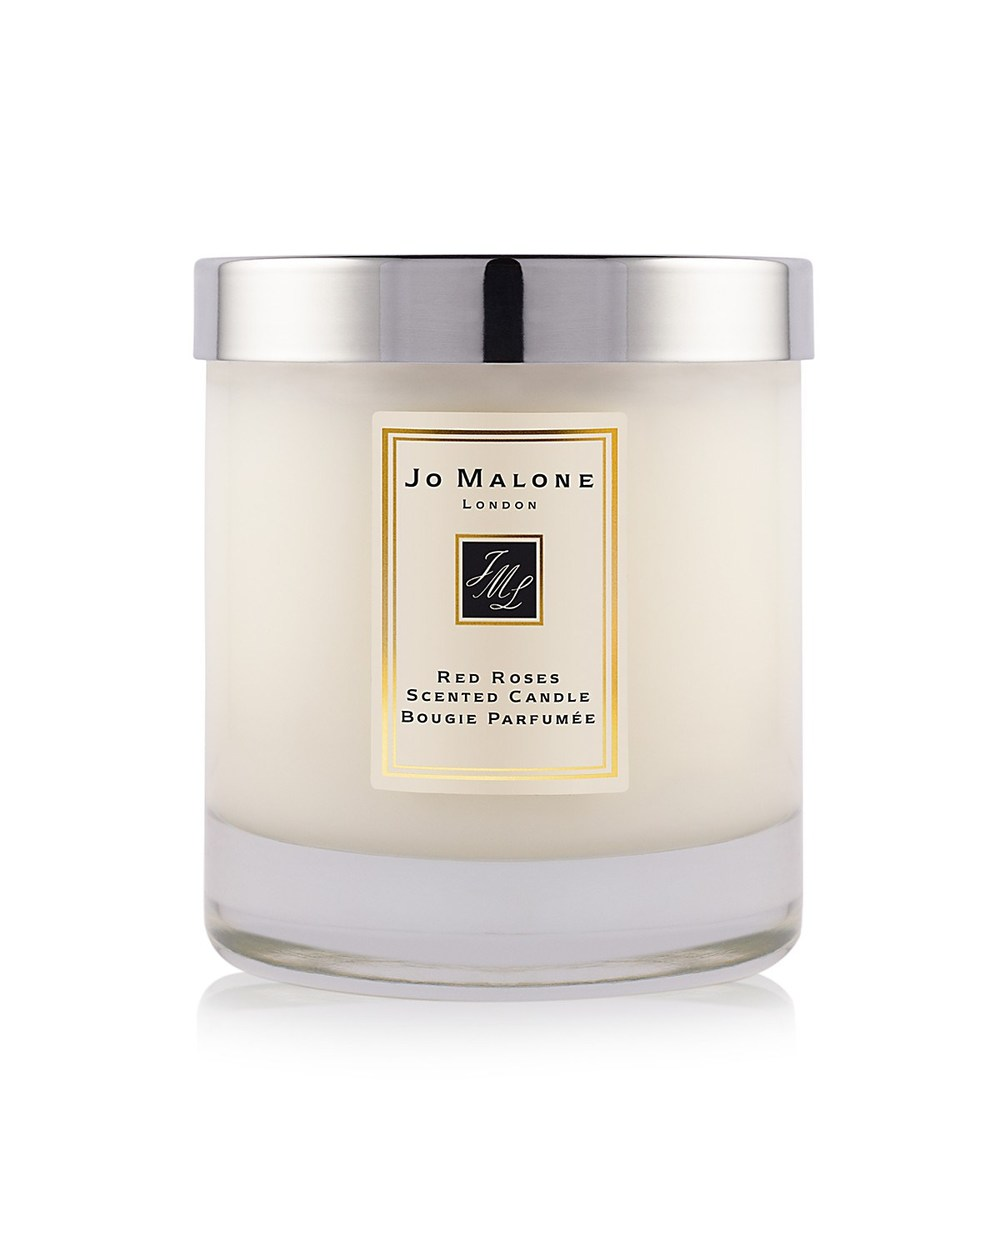 Red roses candle by Jo Malone